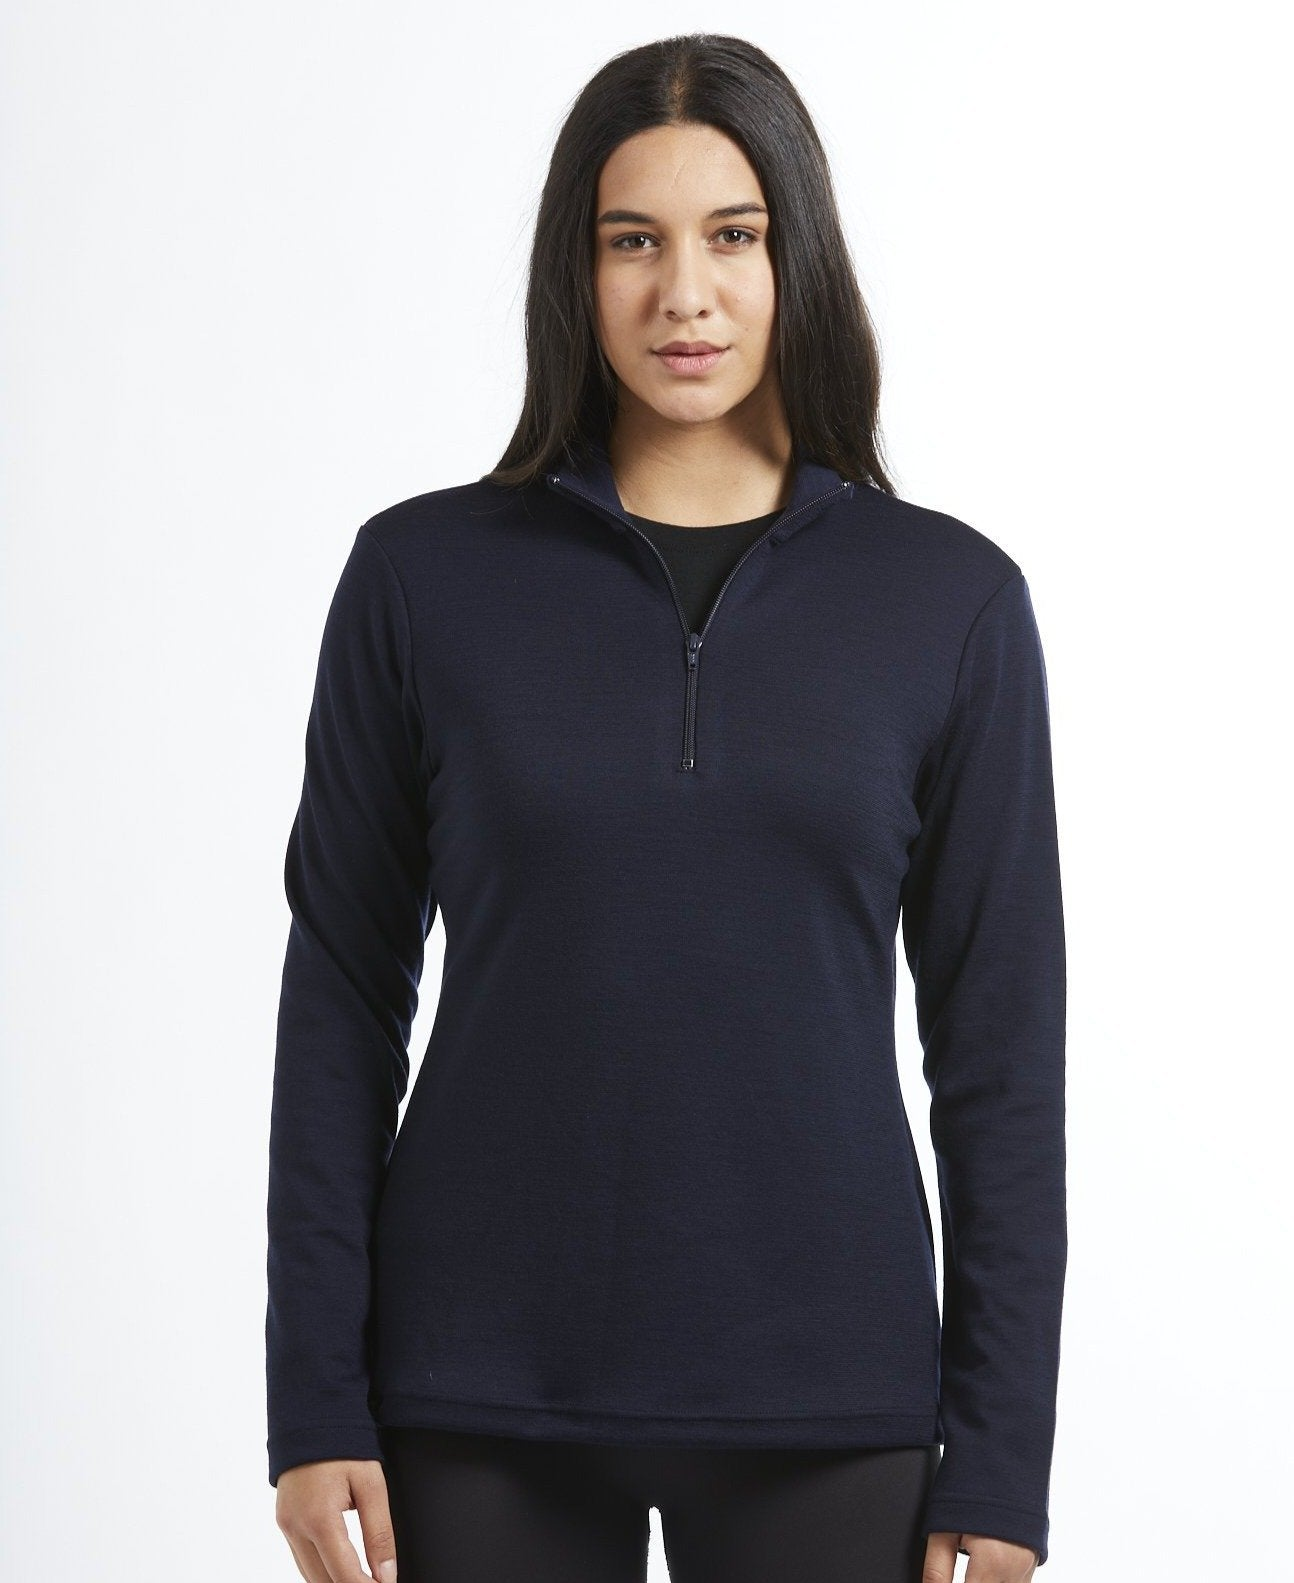 Women's Merino Wool Coast Quarter Zip Jersey - Navy